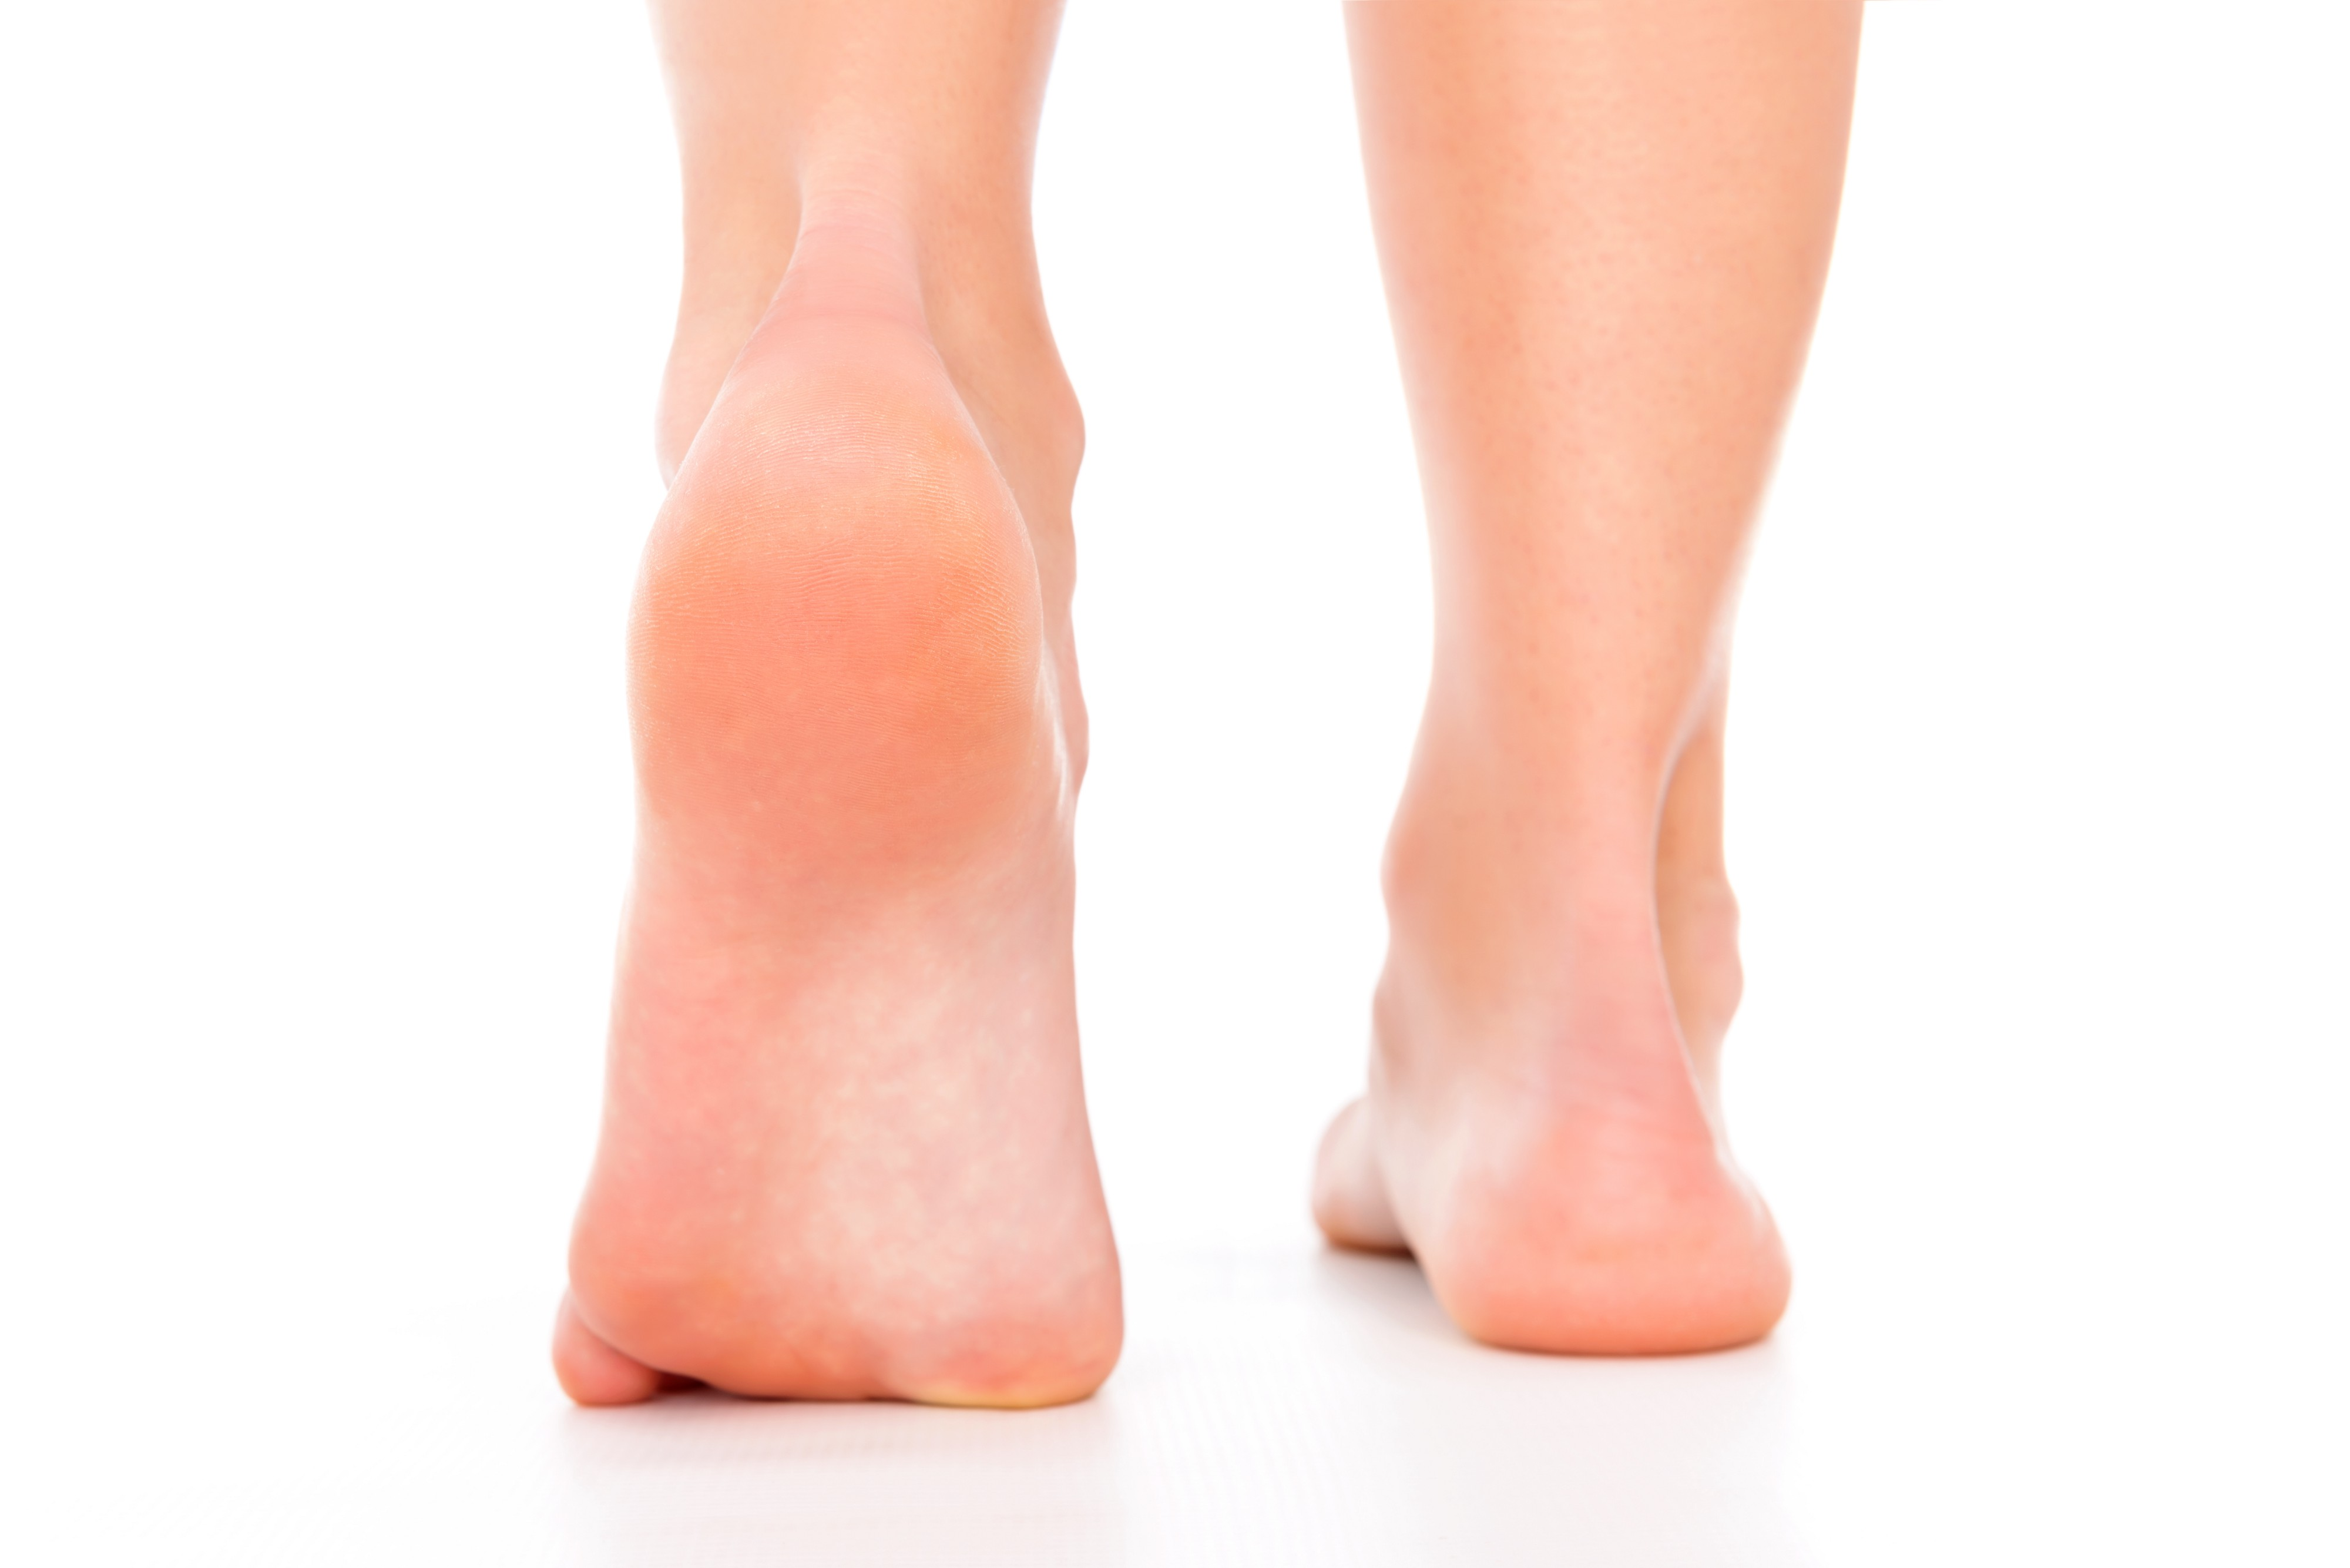 Therapeutic Footwear The Right Shoes Make A Major Difference For